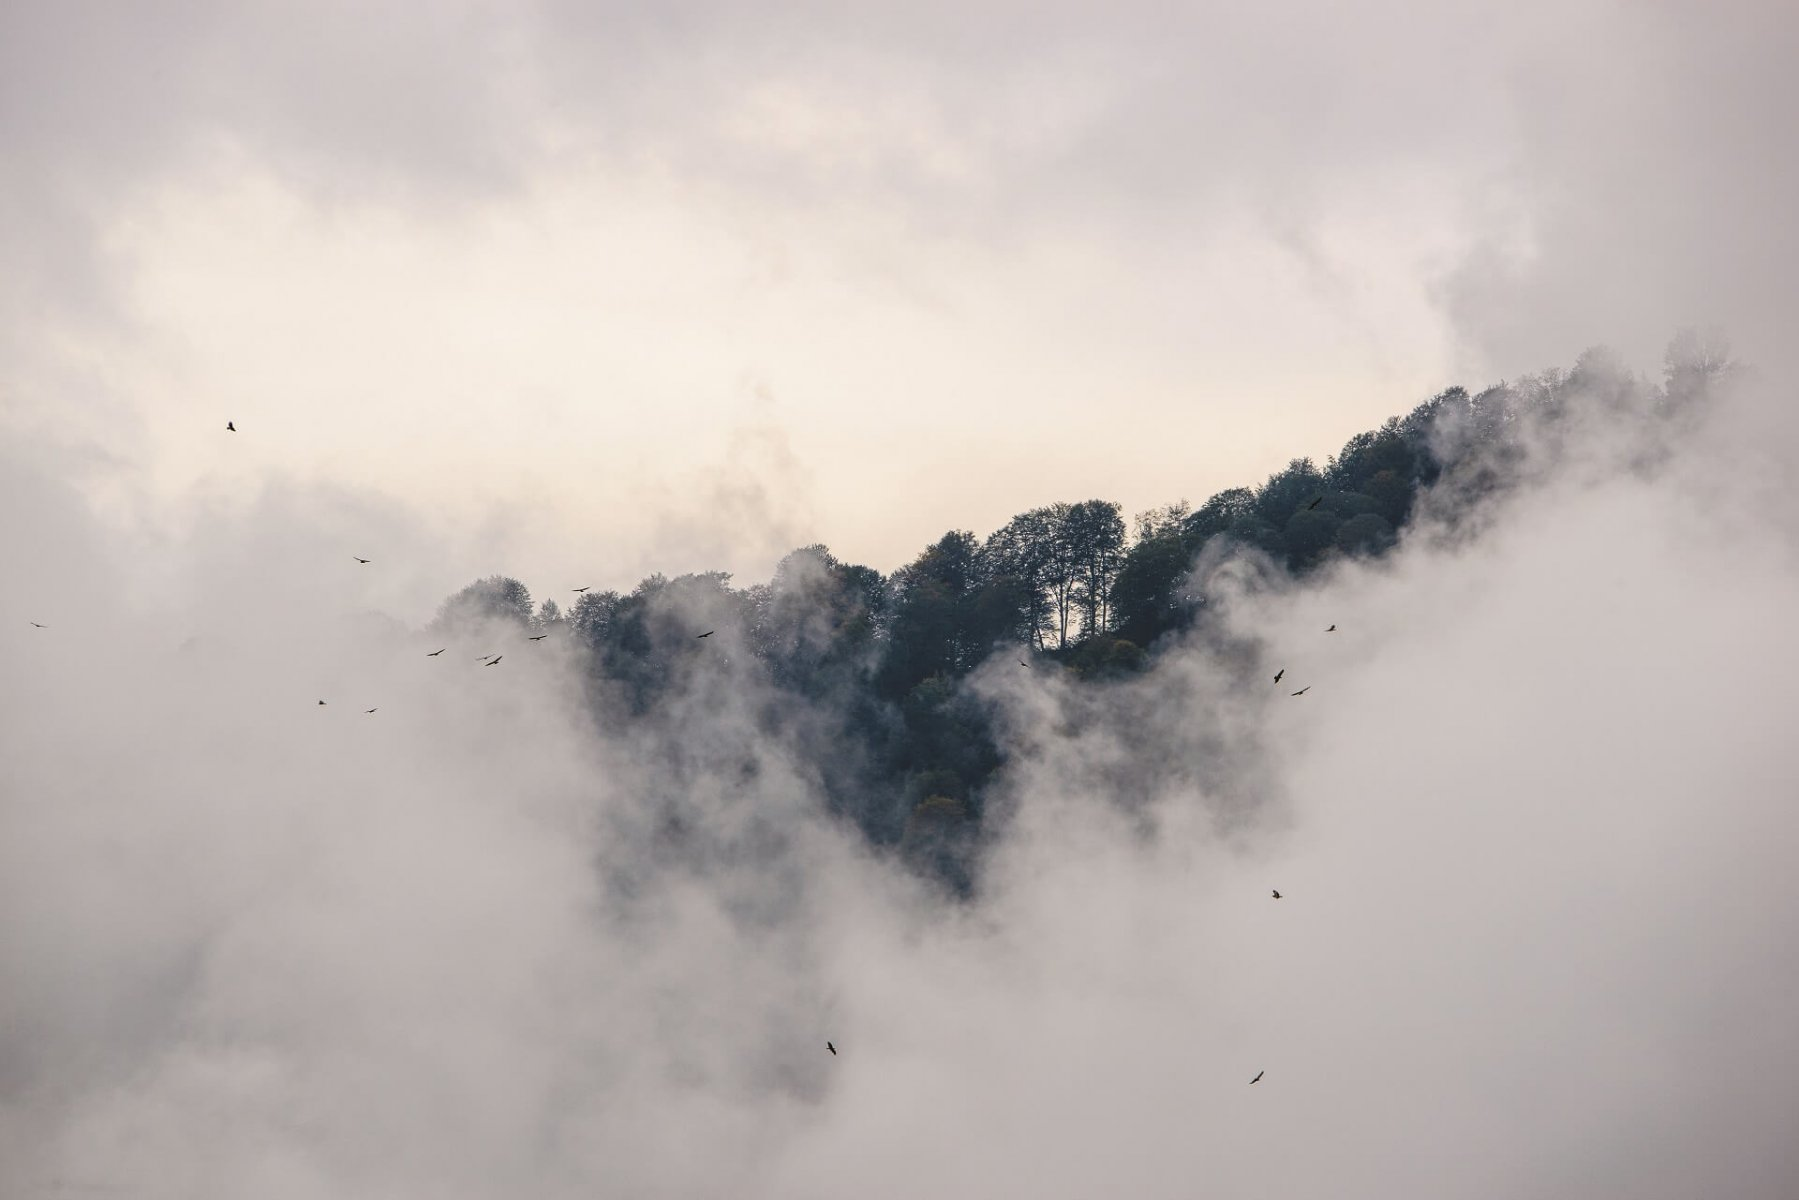 Raptors emerge from the mist as they glide higher and higher © Lars Soerink